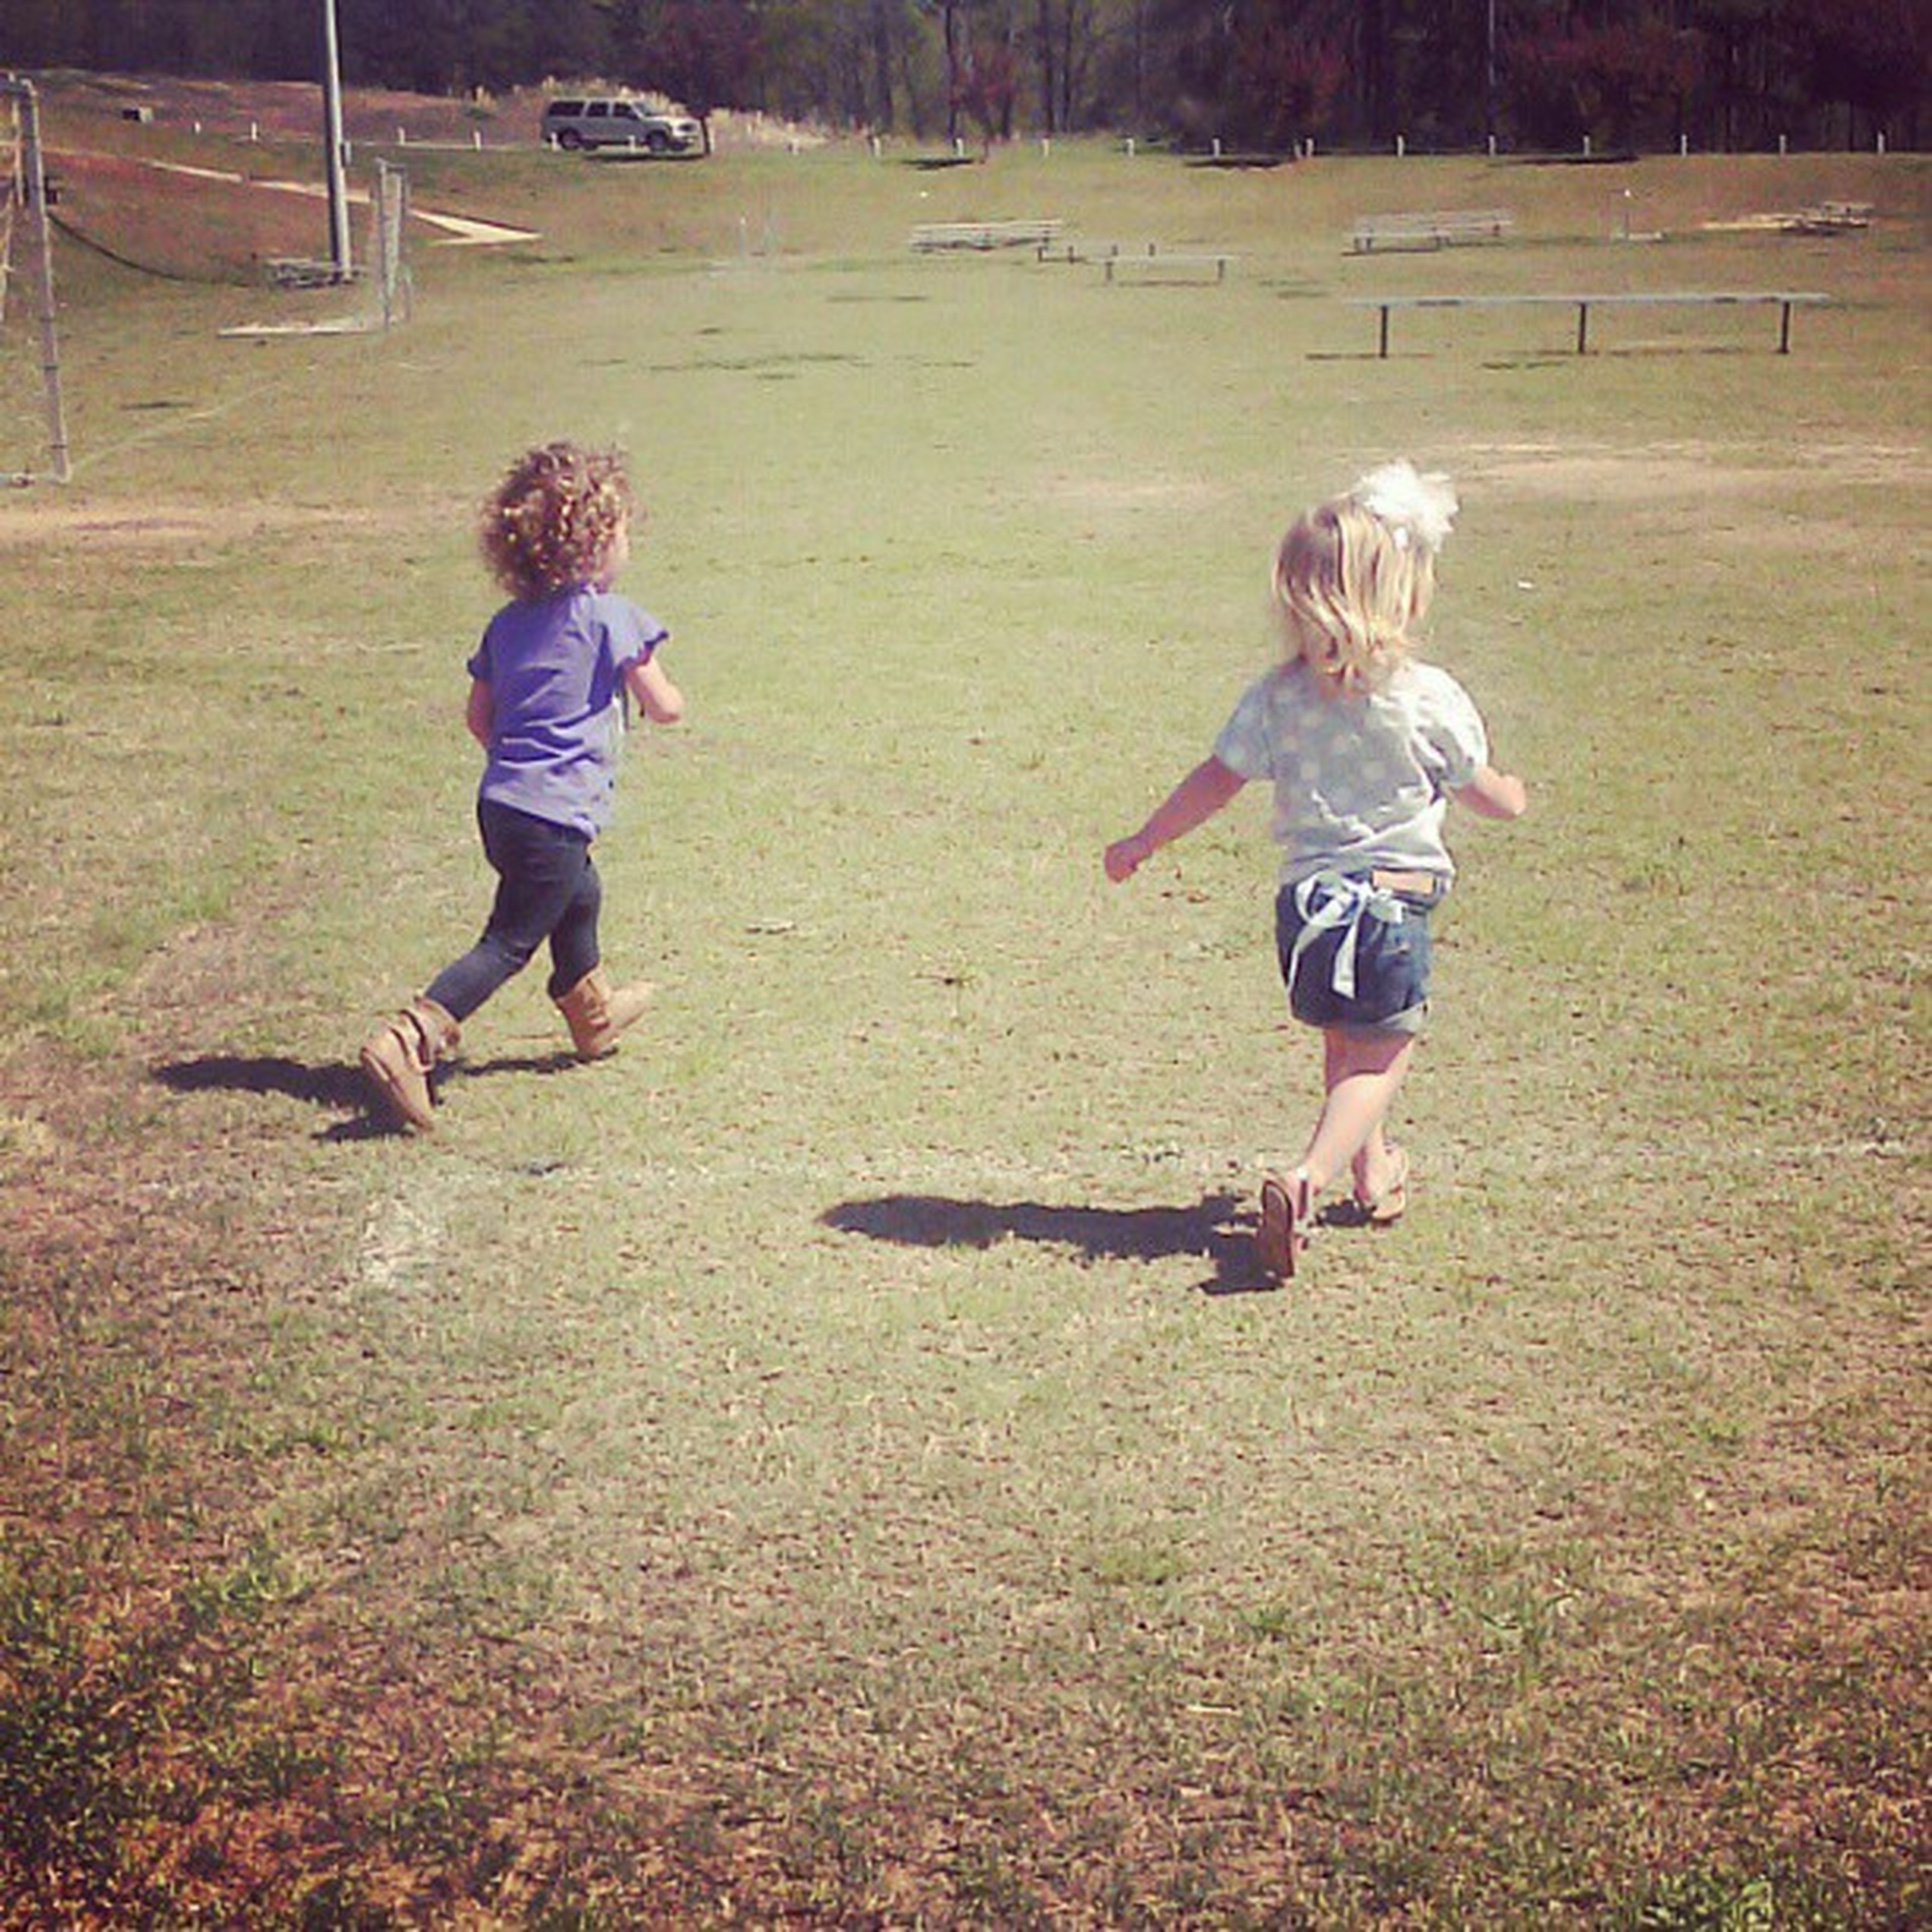 childhood, full length, elementary age, casual clothing, boys, lifestyles, girls, leisure activity, grass, innocence, person, playing, field, playful, cute, day, fun, park - man made space